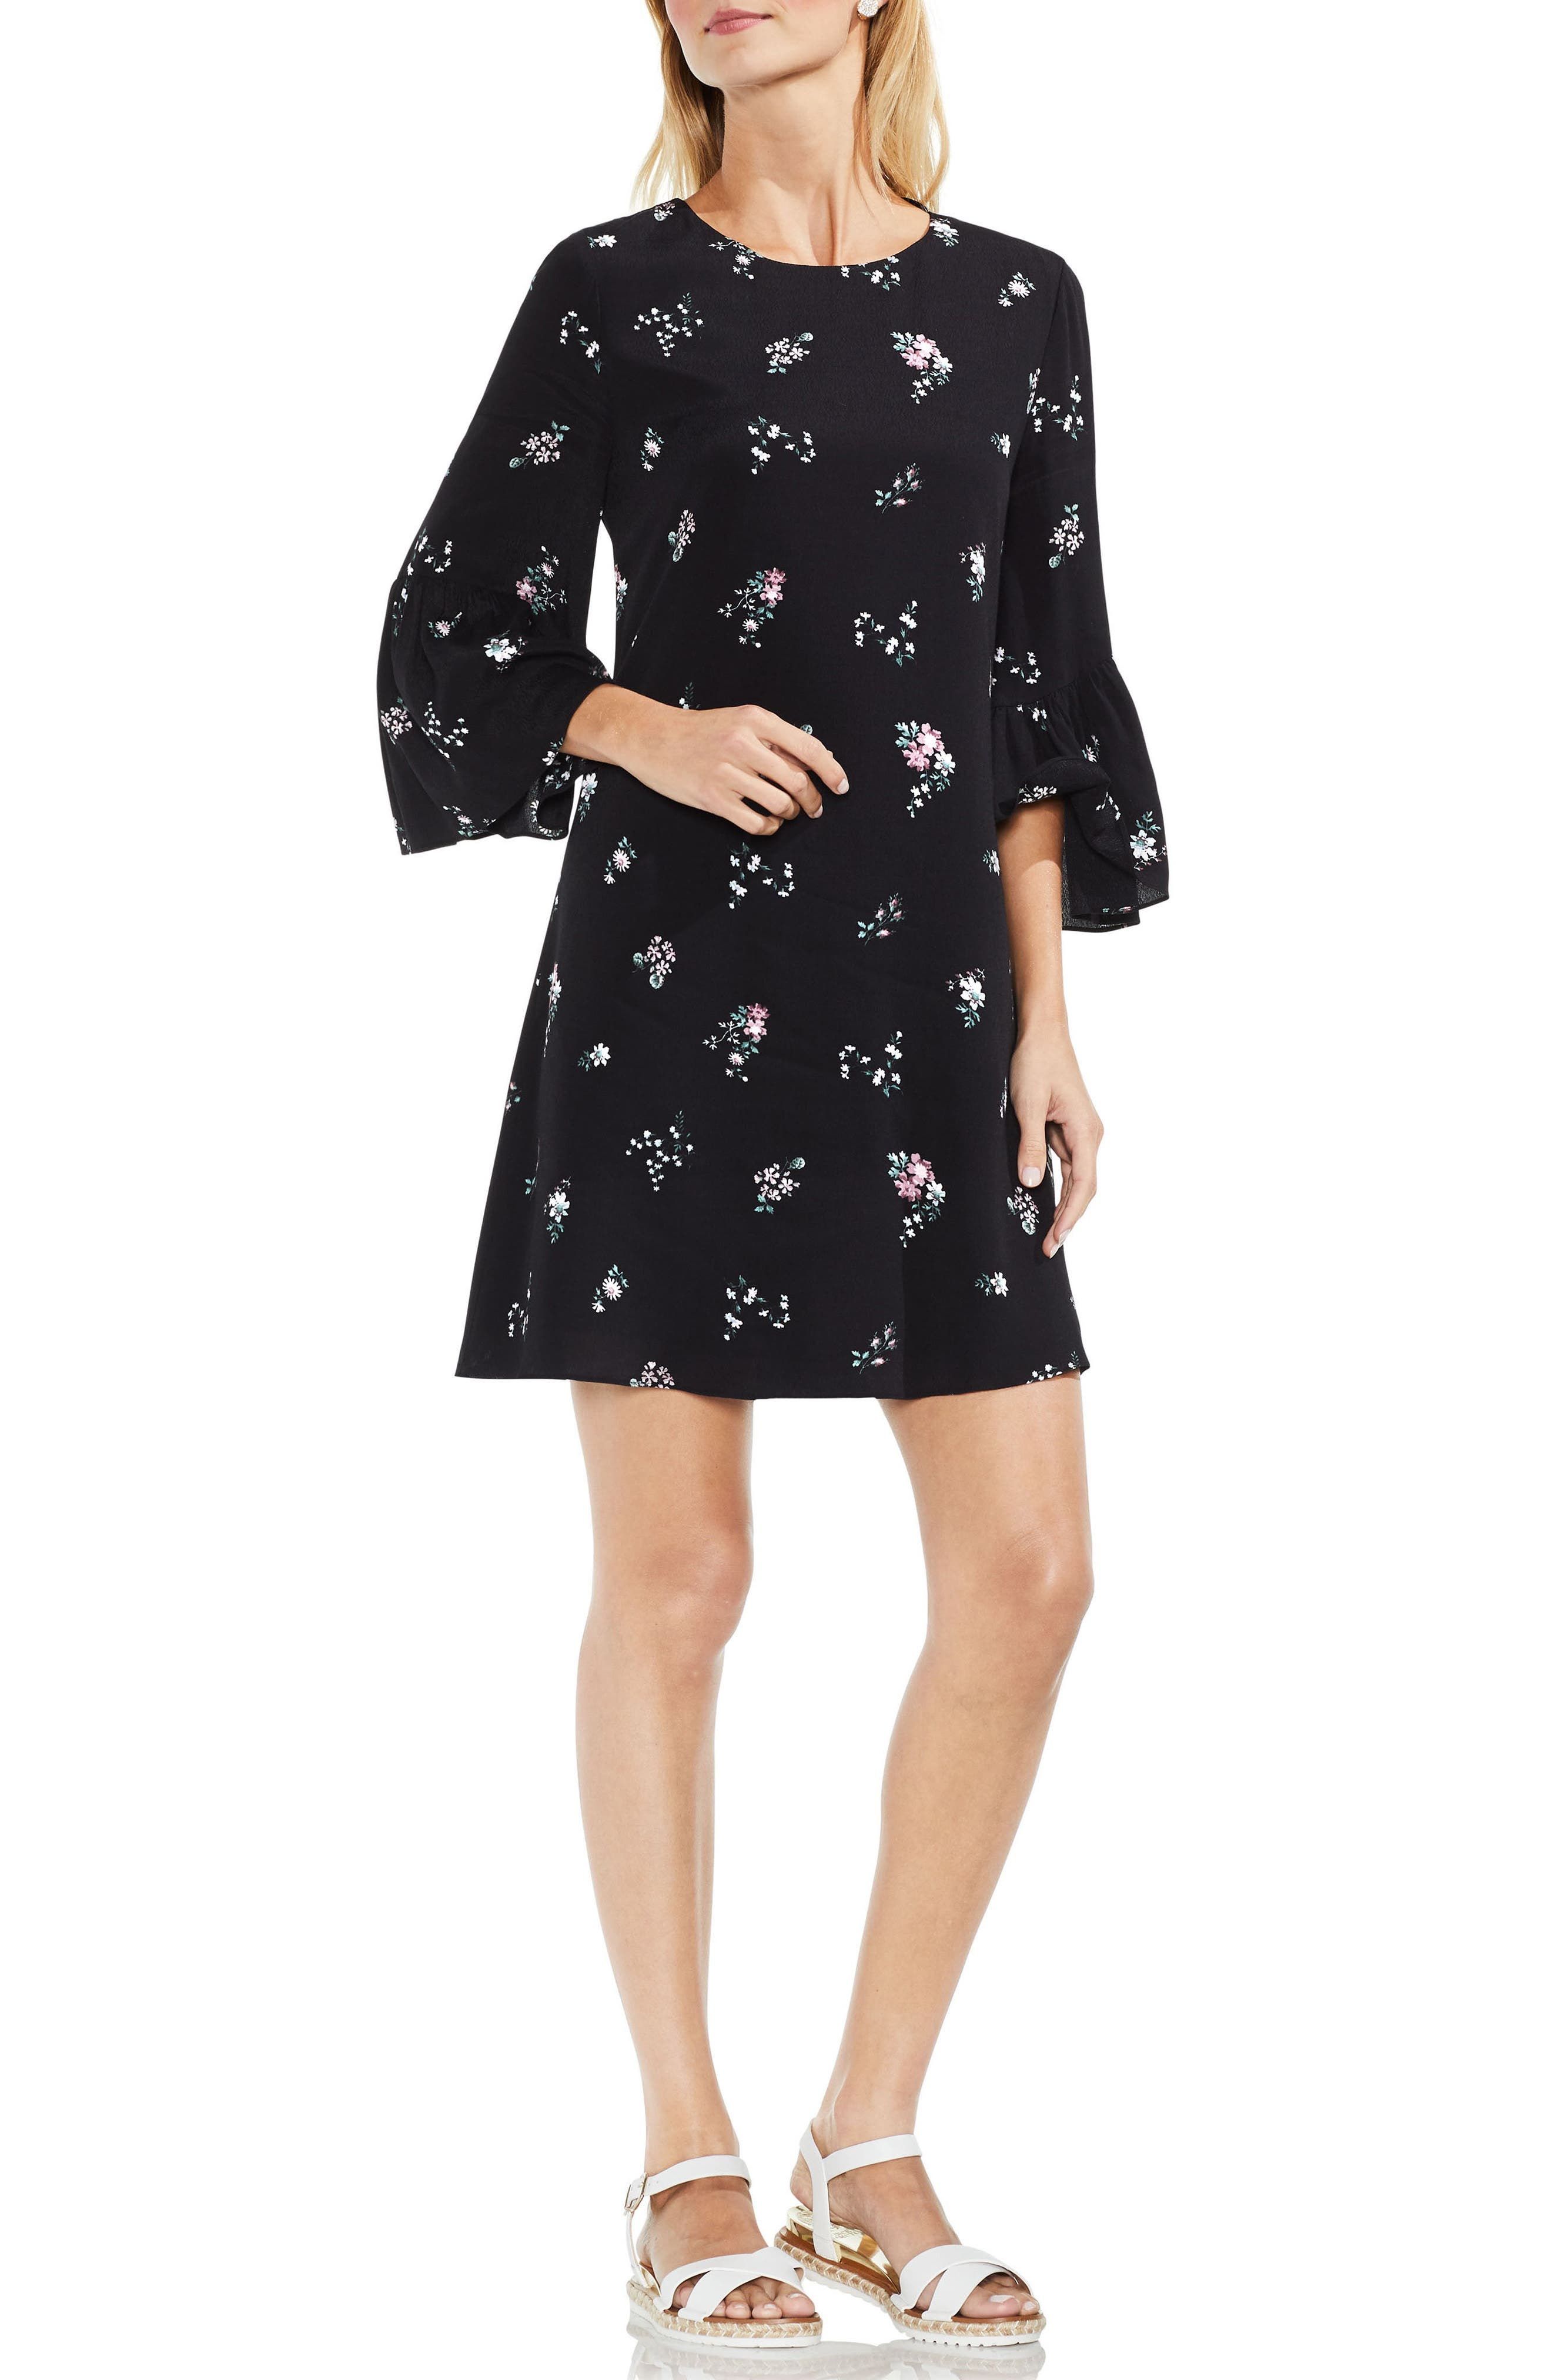 Ruffle Sleeve Floral Dress,                             Alternate thumbnail 3, color,                             006